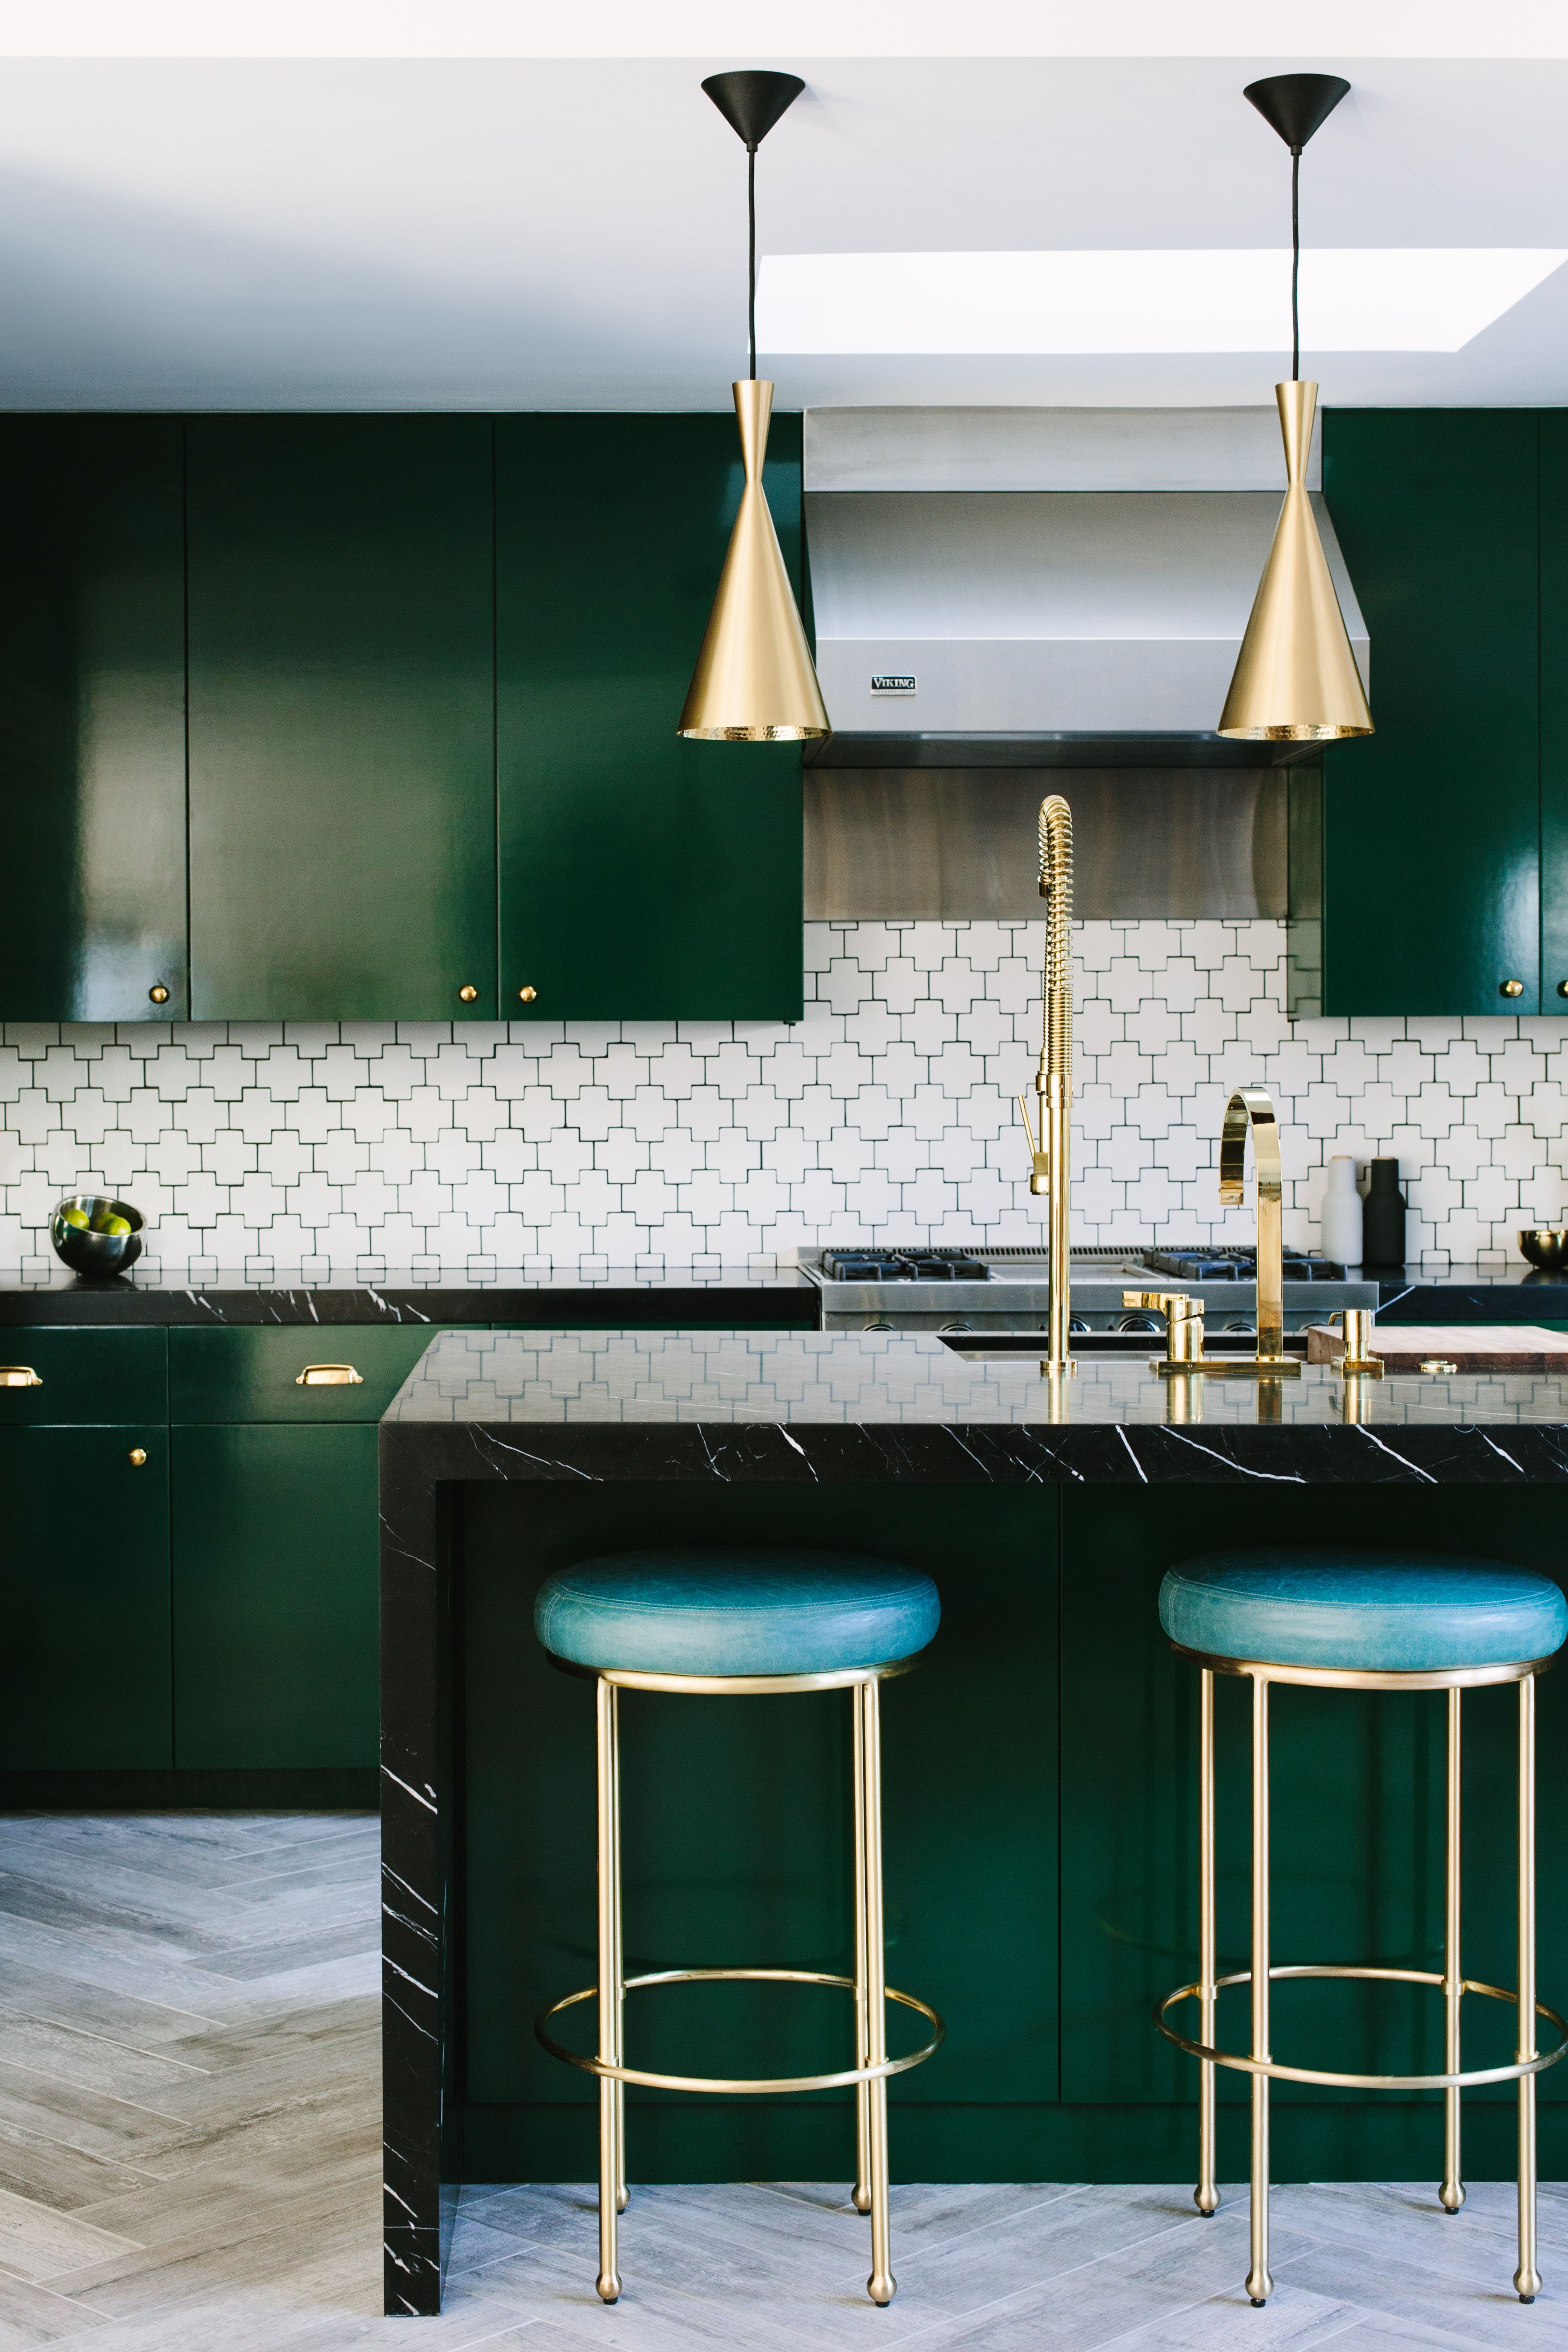 """<p>Tile offers a repeating pattern to your backsplash, floor, or counter no matter its shape — and that can make you think the quietest options (like rectangles and squares) are the safest. But in a solid or neutral hue, more playful patterns dial up your kitchen's decor without overwhelming the space. </p><p><br> </p><p>""""I stumbled across this backsplash (Swiss Cross by Ann Sacks) while searching for something that <em>looked</em> like subway tile, but wasn't,"""" says Caitlin Murray of <a href=""""http://www.blacklacquerdesign.com/"""" target=""""_blank"""">Black Lacquer Design</a>. """"I was reluctant to introduce a new color pattern into this kitchen because the cabinets and counters are so strong, but I wanted a backsplash that held its own. The geometric lines complement the modern style of the kitchen — it's a traditional element with a contemporary twist.""""<br></p>"""